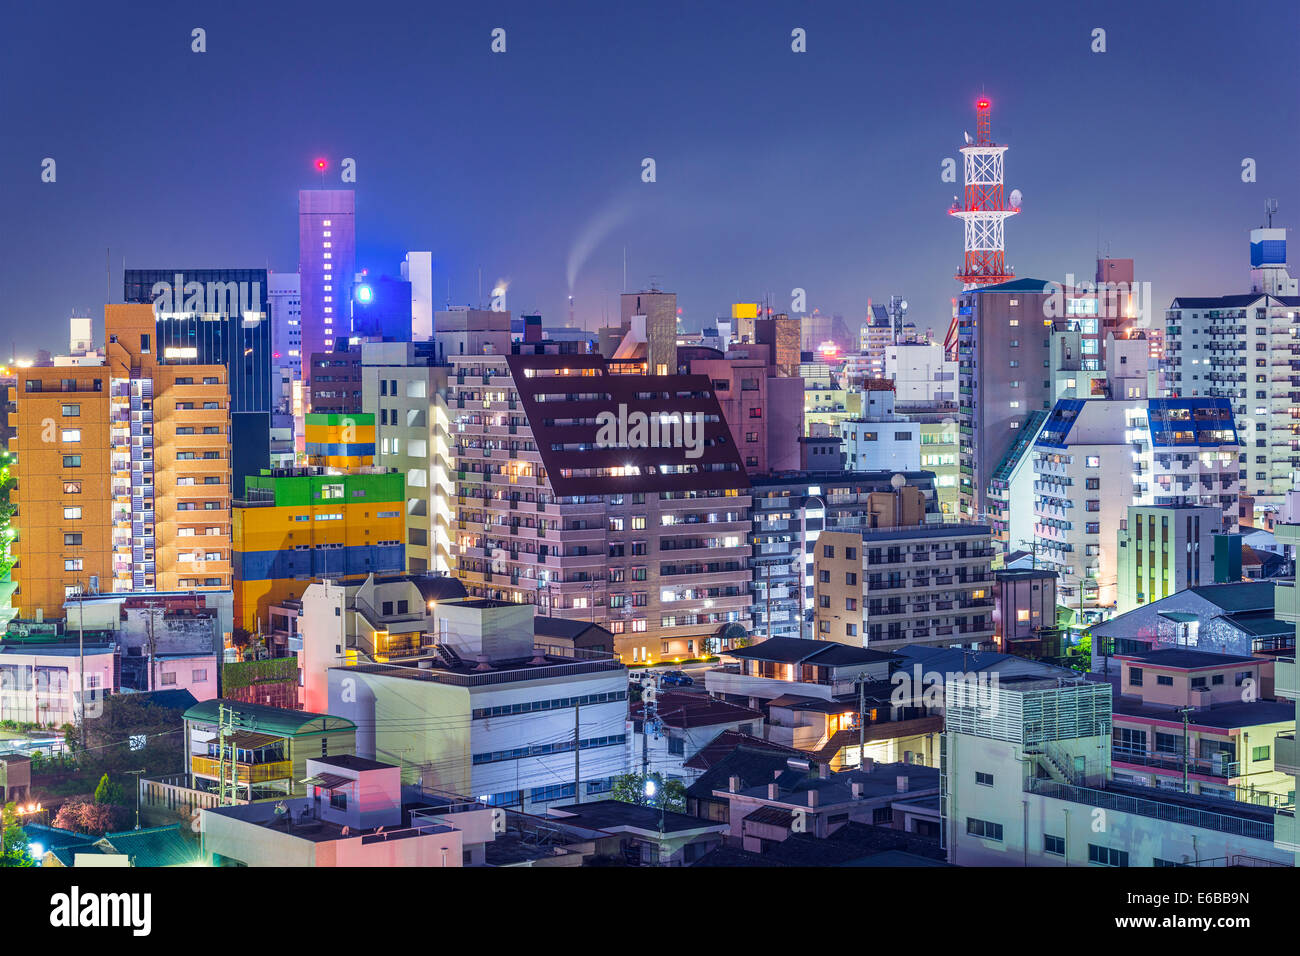 Wakayama, Japan downtown cityscape. - Stock Image